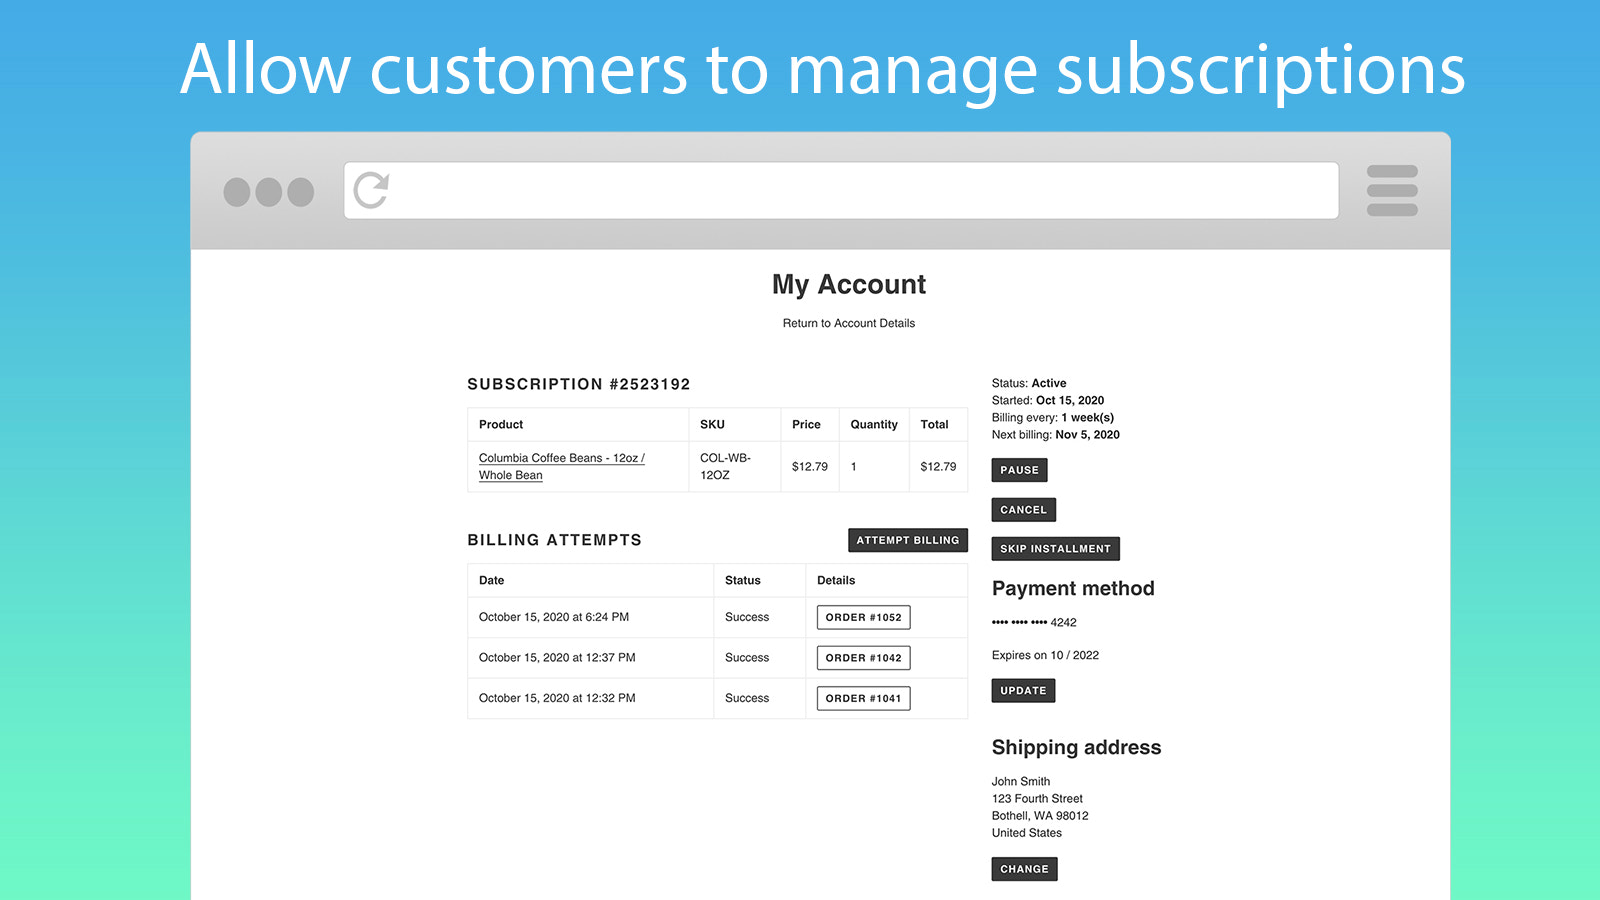 Allow customers to manage their own subscriptions